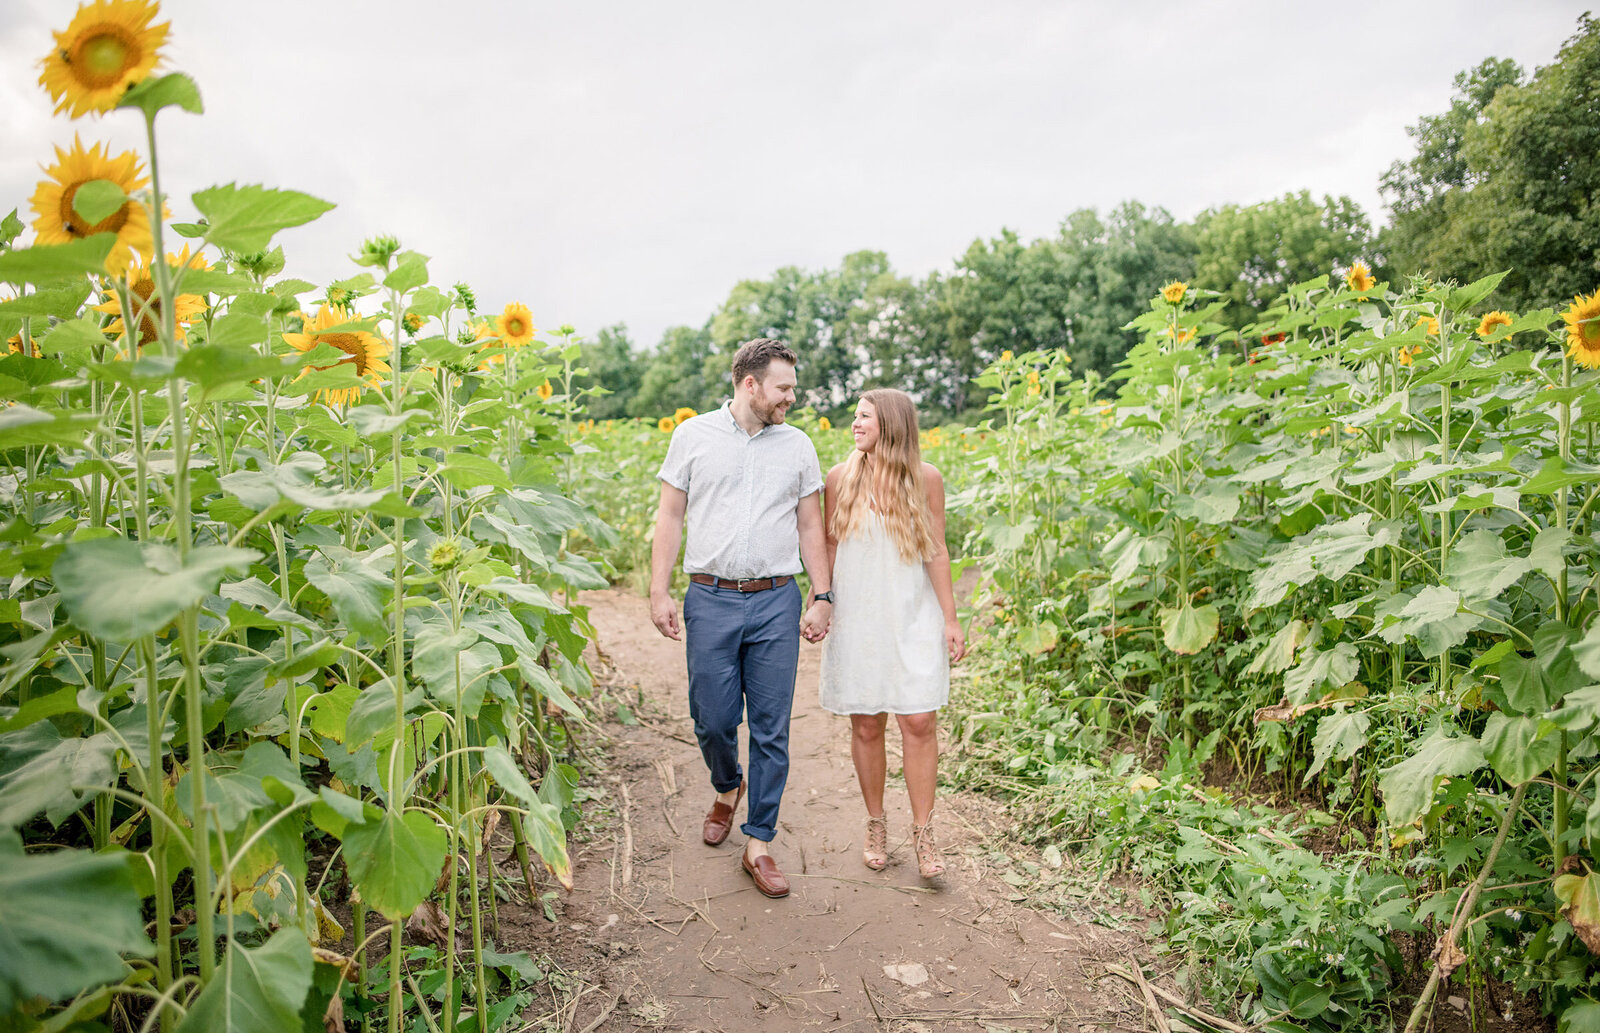 51-hudson-valley-ny-engagement-photographer